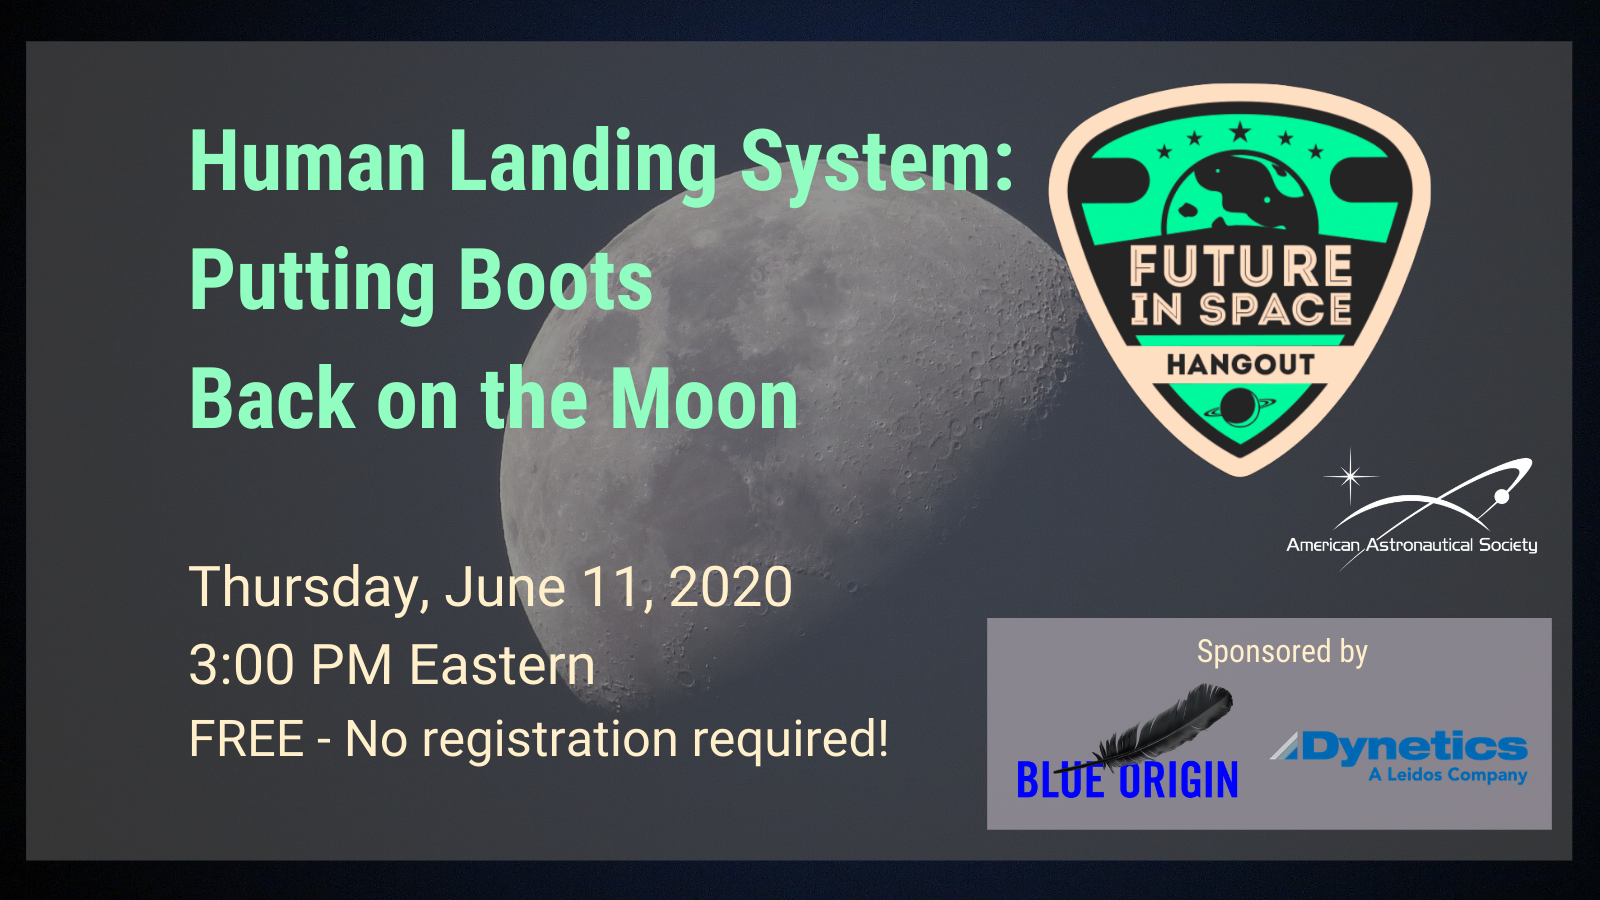 Human Landing System: Putting Boots Back on the Moon